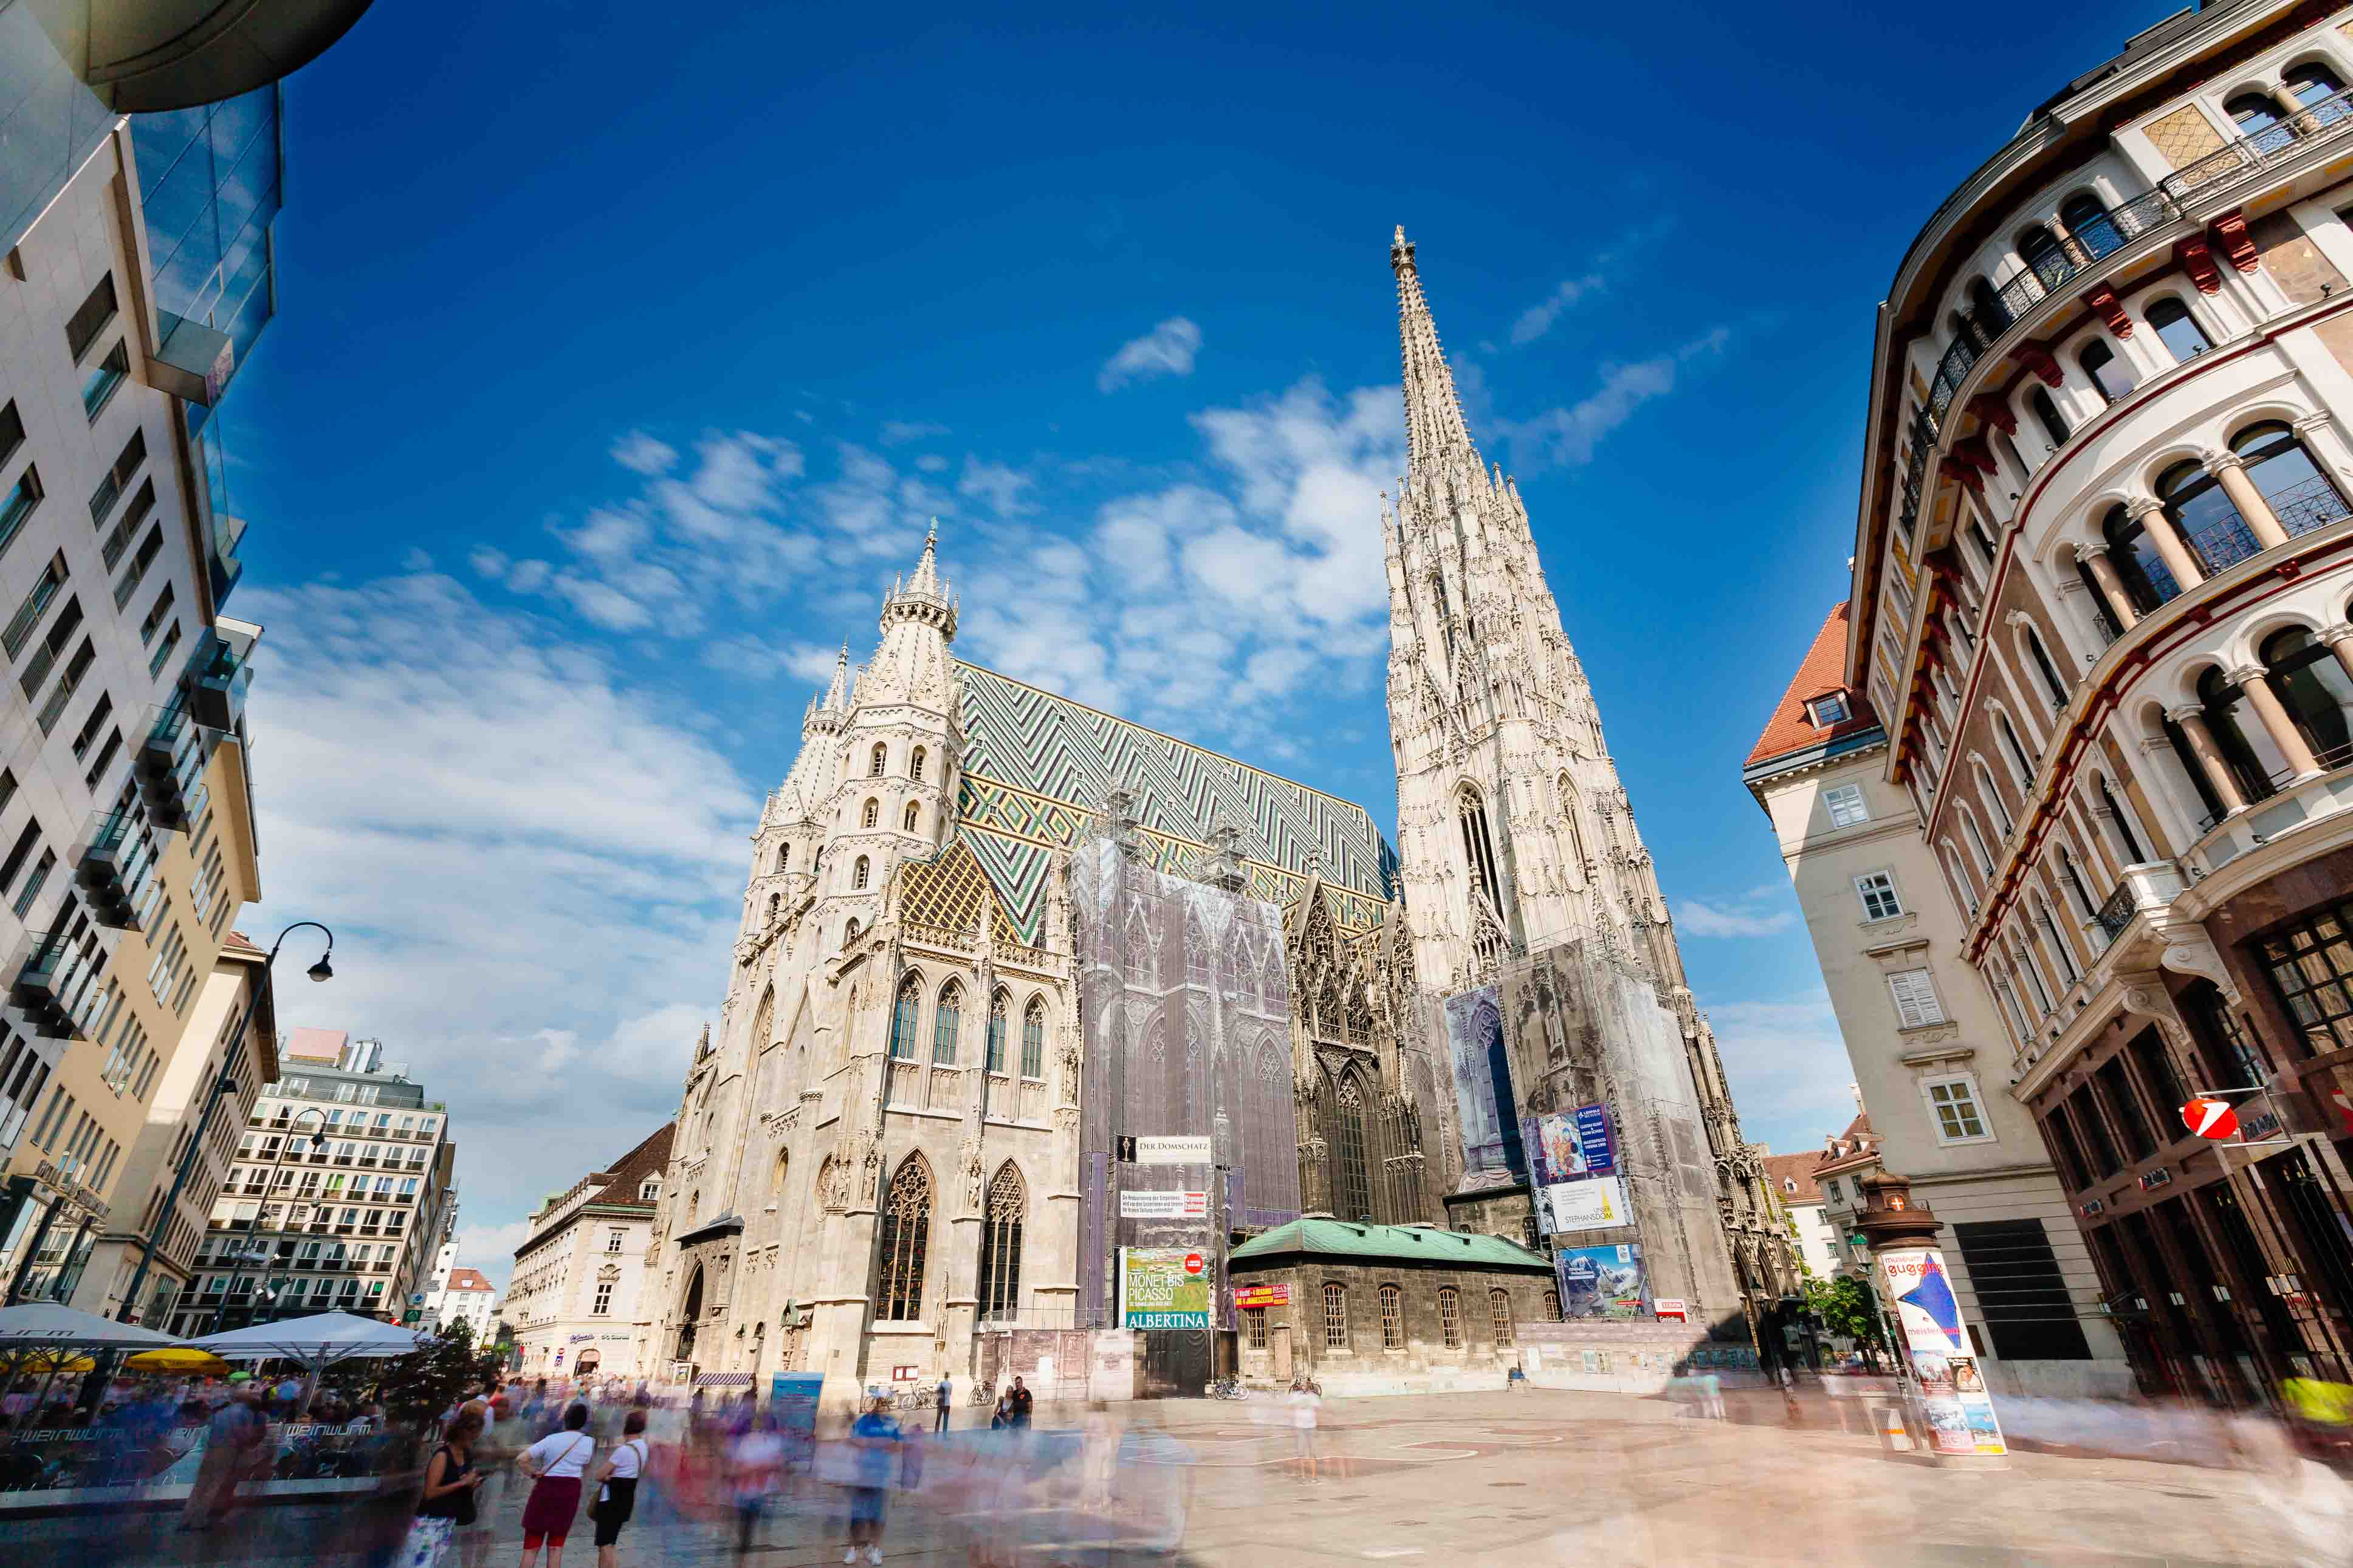 Stephansdom_VIENNA SIGHTSEEING TOURS_Bernhard Luck.jpg